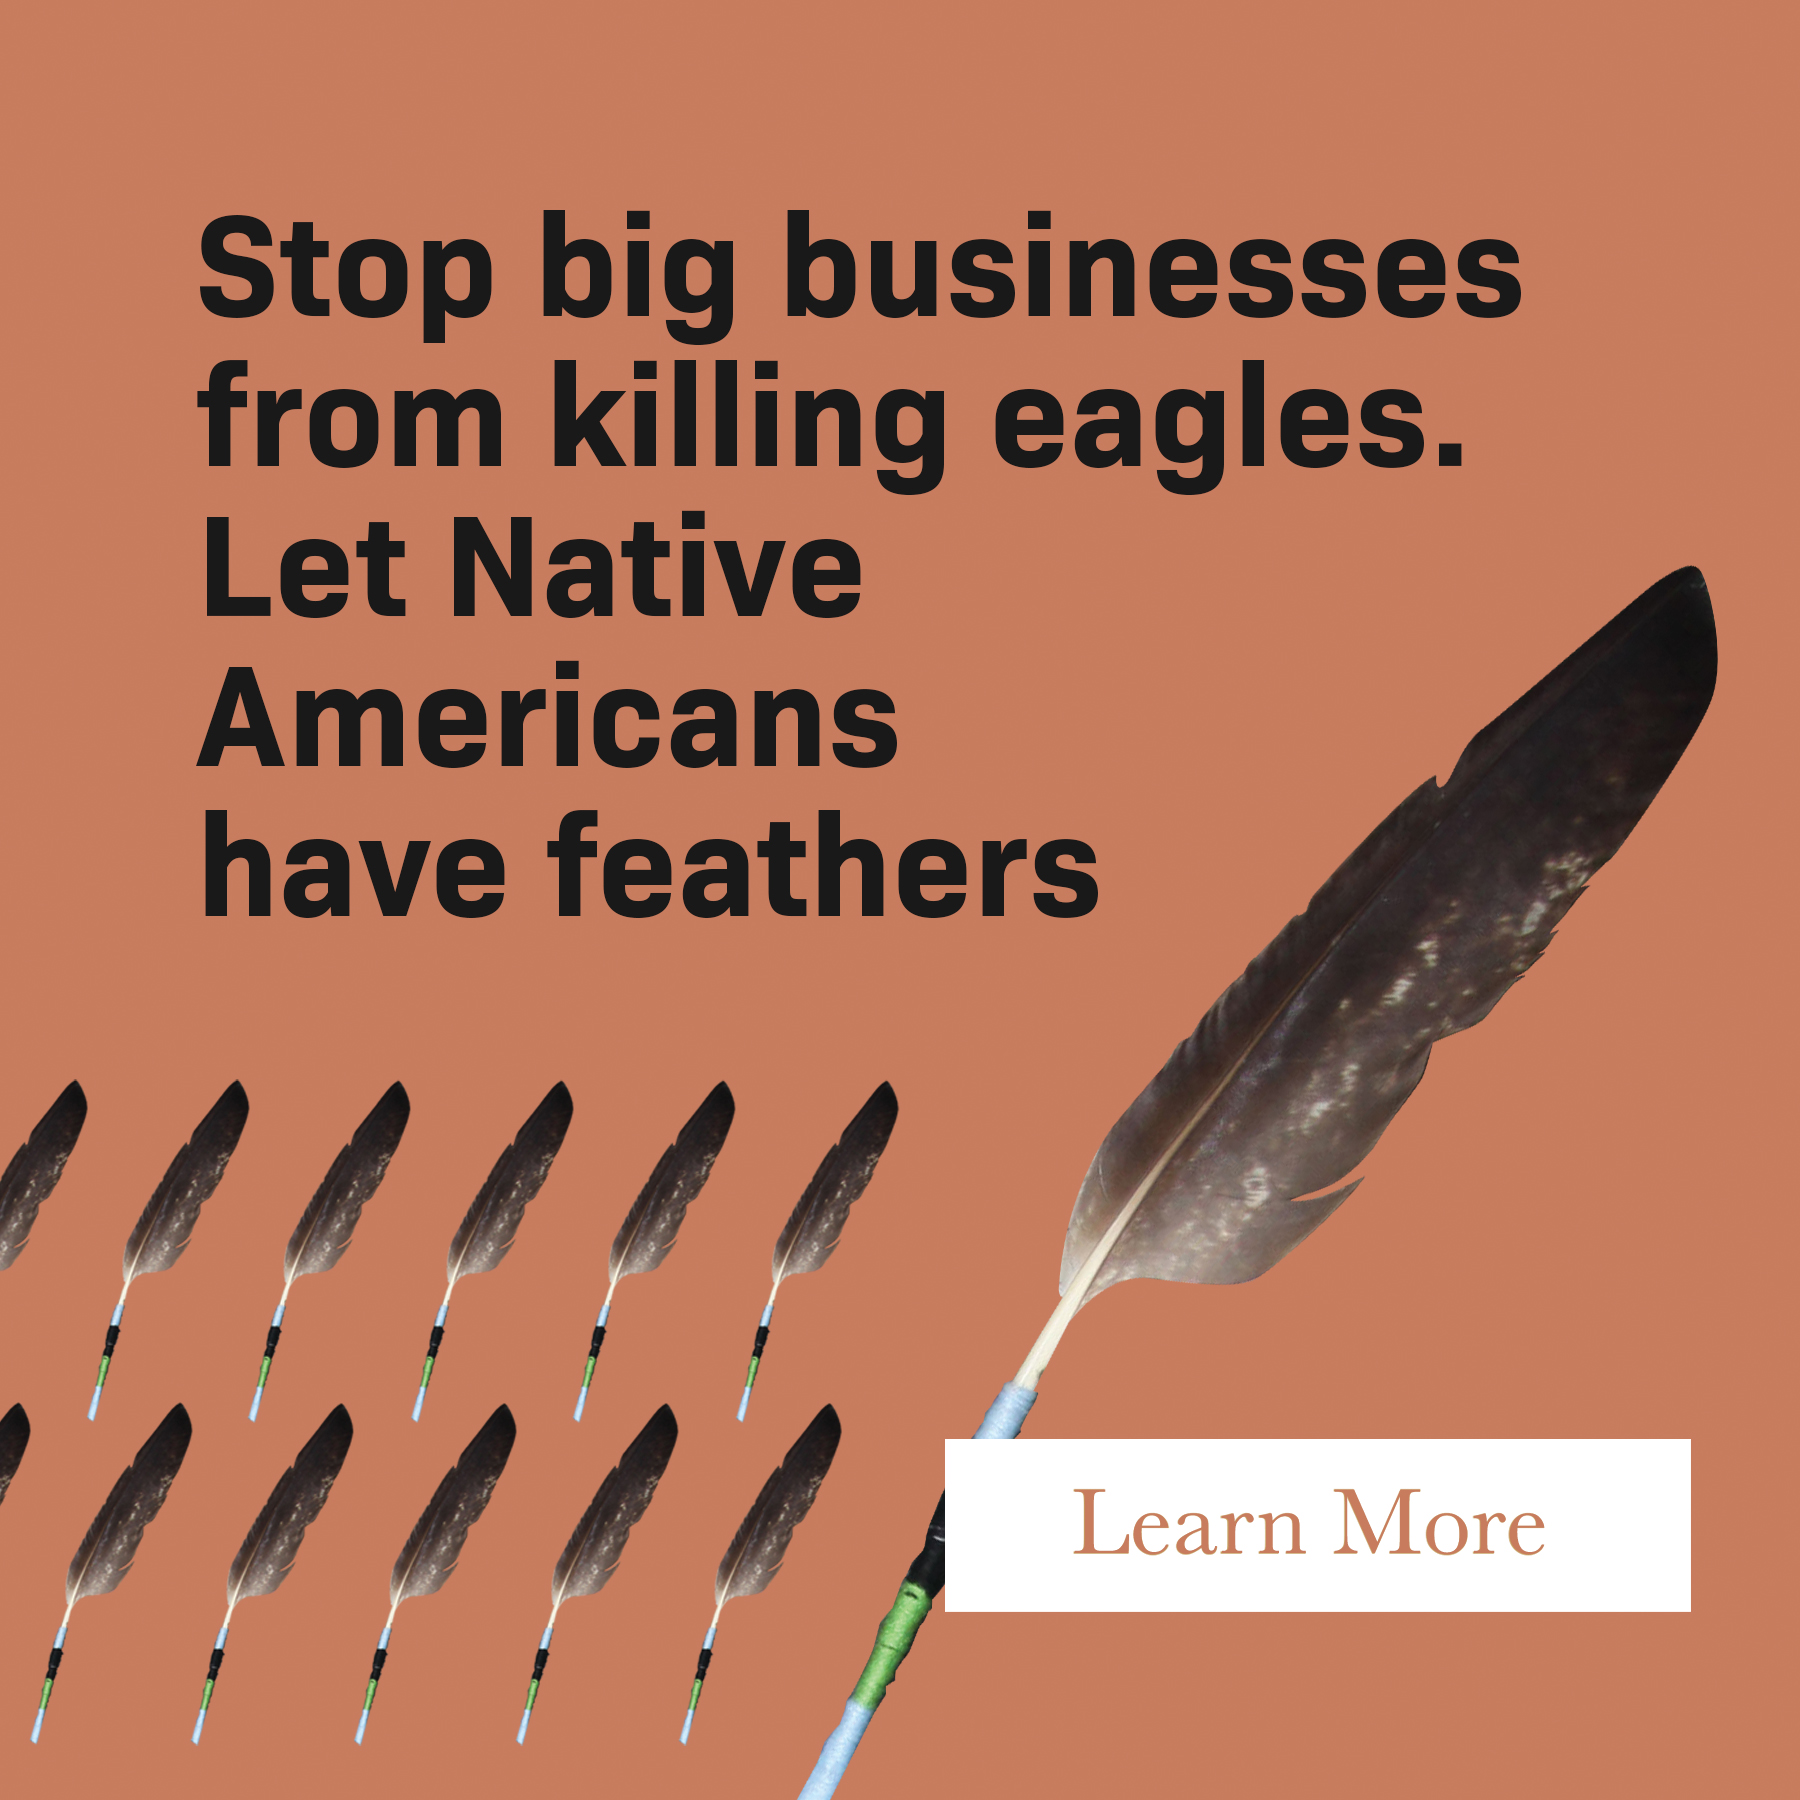 Let Native Americans have feathers